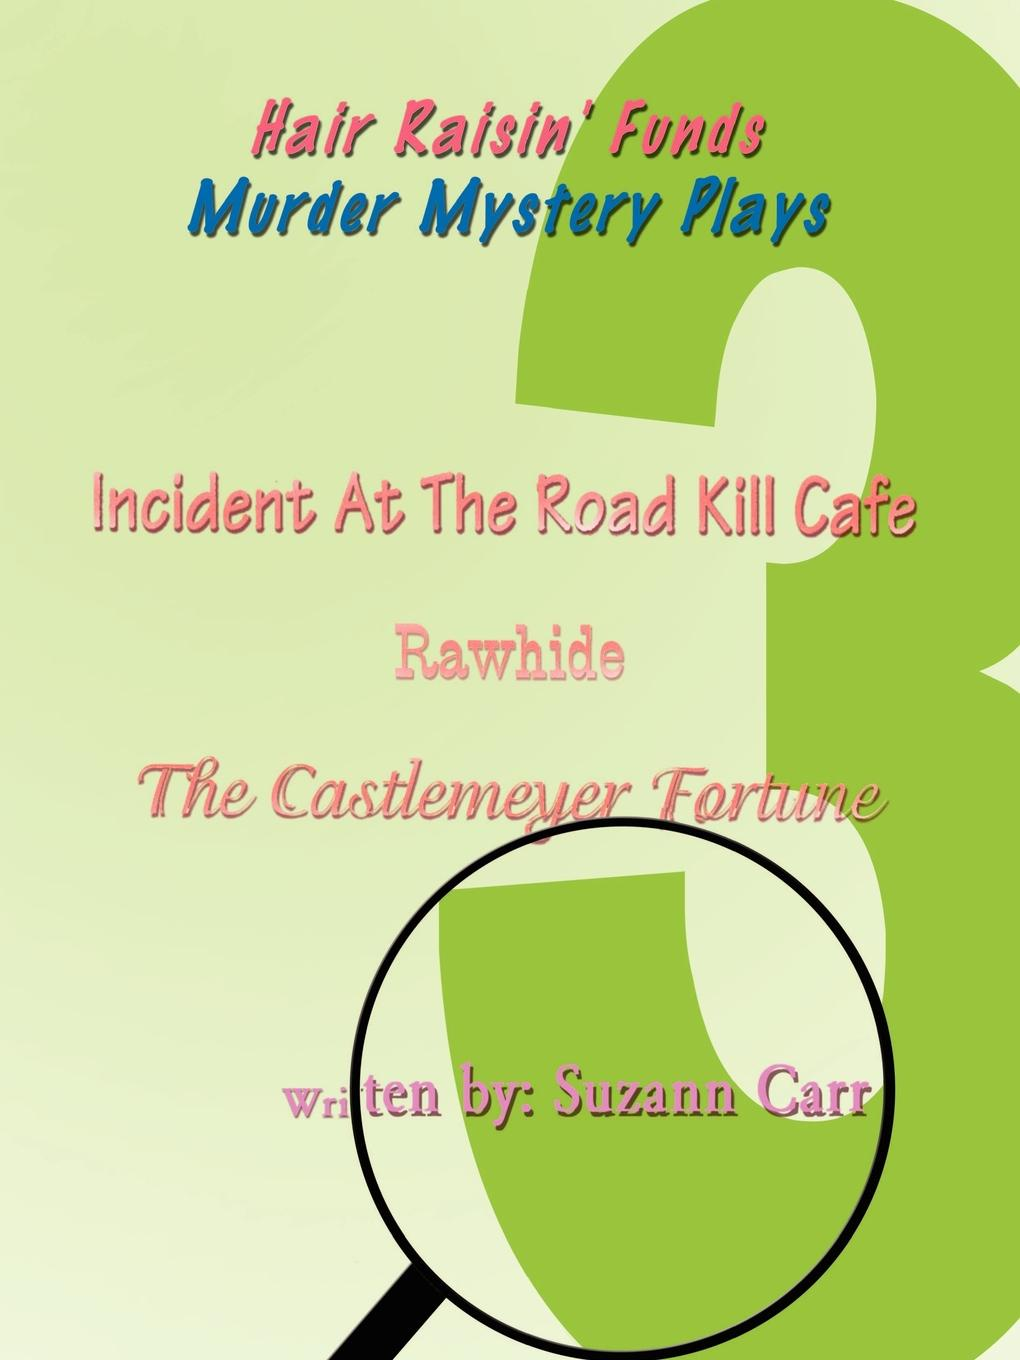 Hair Raisin` Funds Murder Mystery Plays. Incident at the Road Kill Cafe, Rawhide, The Castlemeyer Fortune